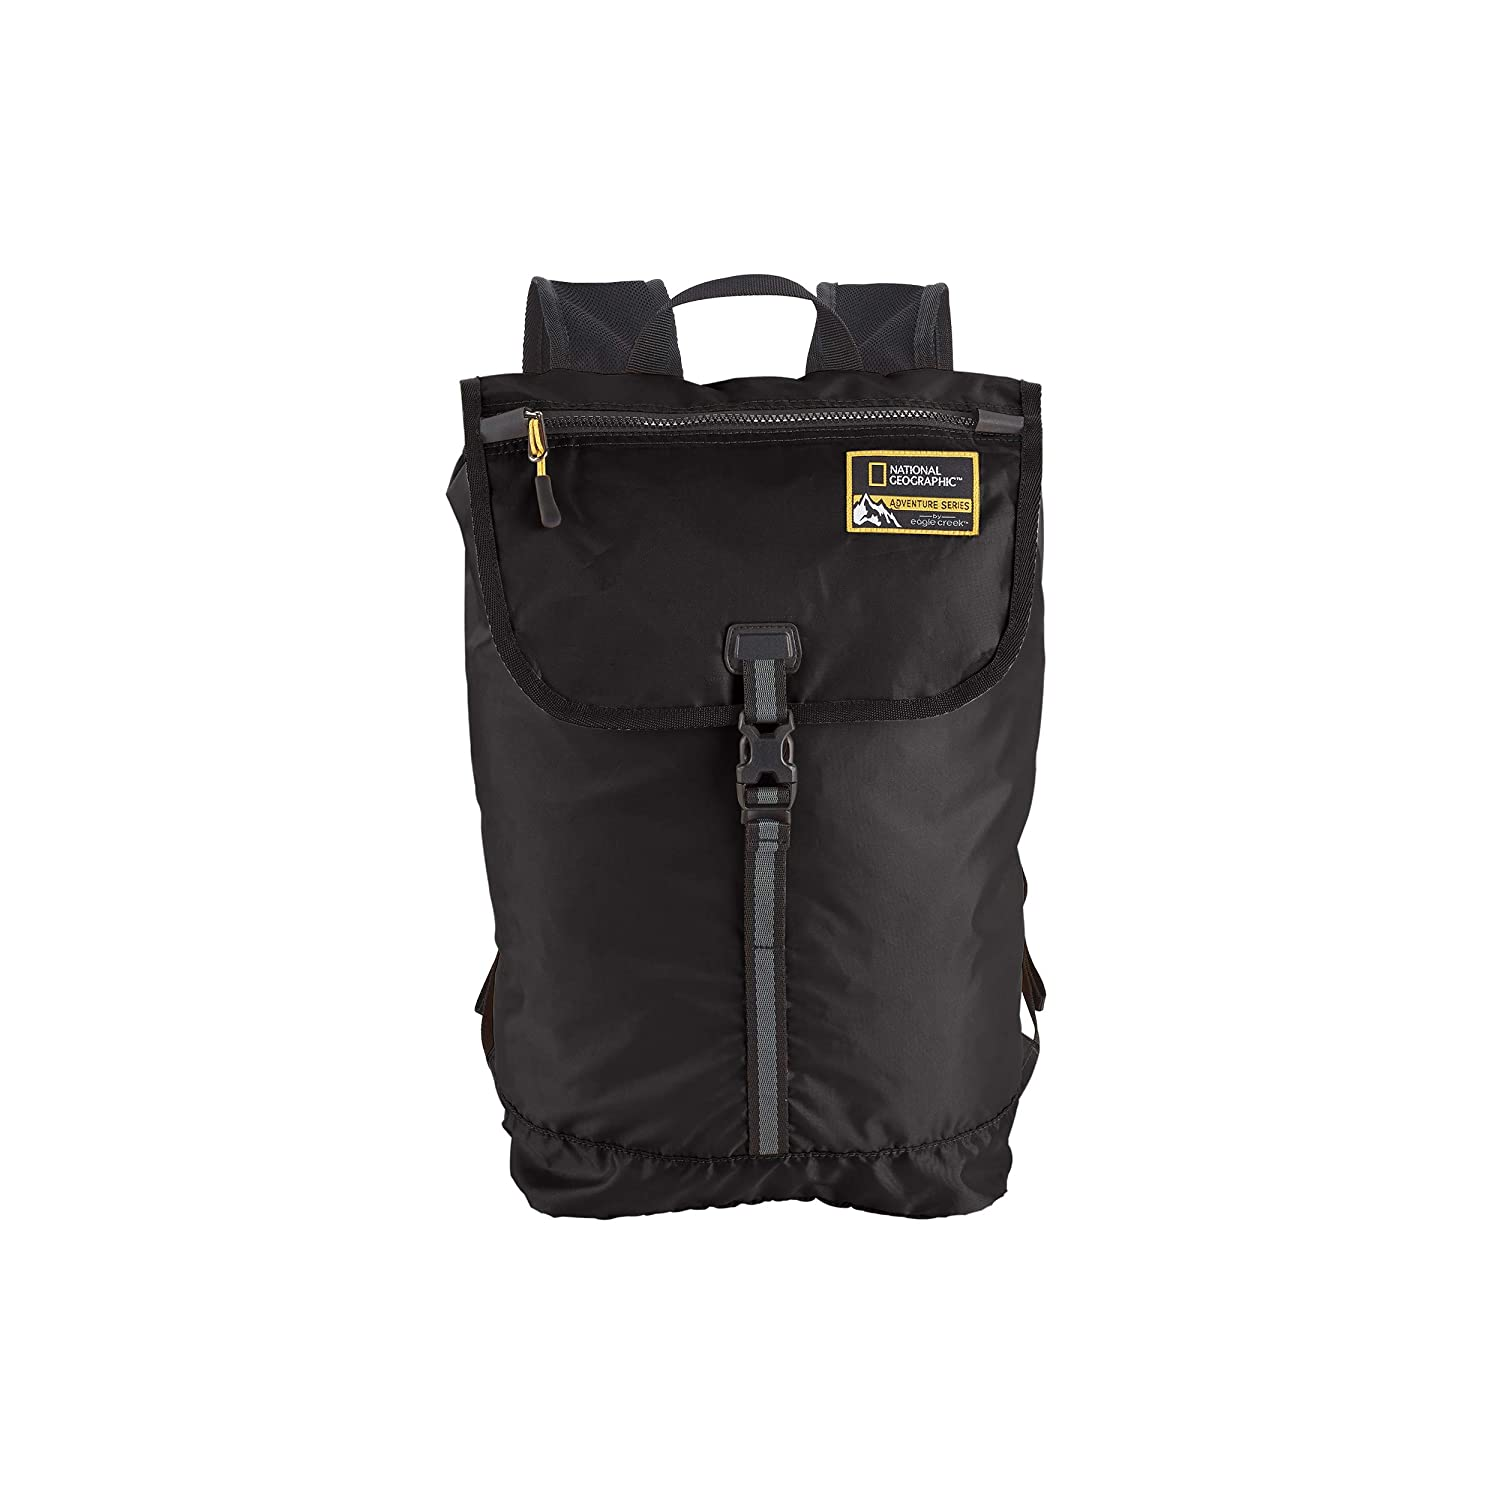 244545d0c Amazon.com   Eagle Creek National Geographic Adventure Packable Backpack 15l  Travel, Black, One Size   Casual Daypacks